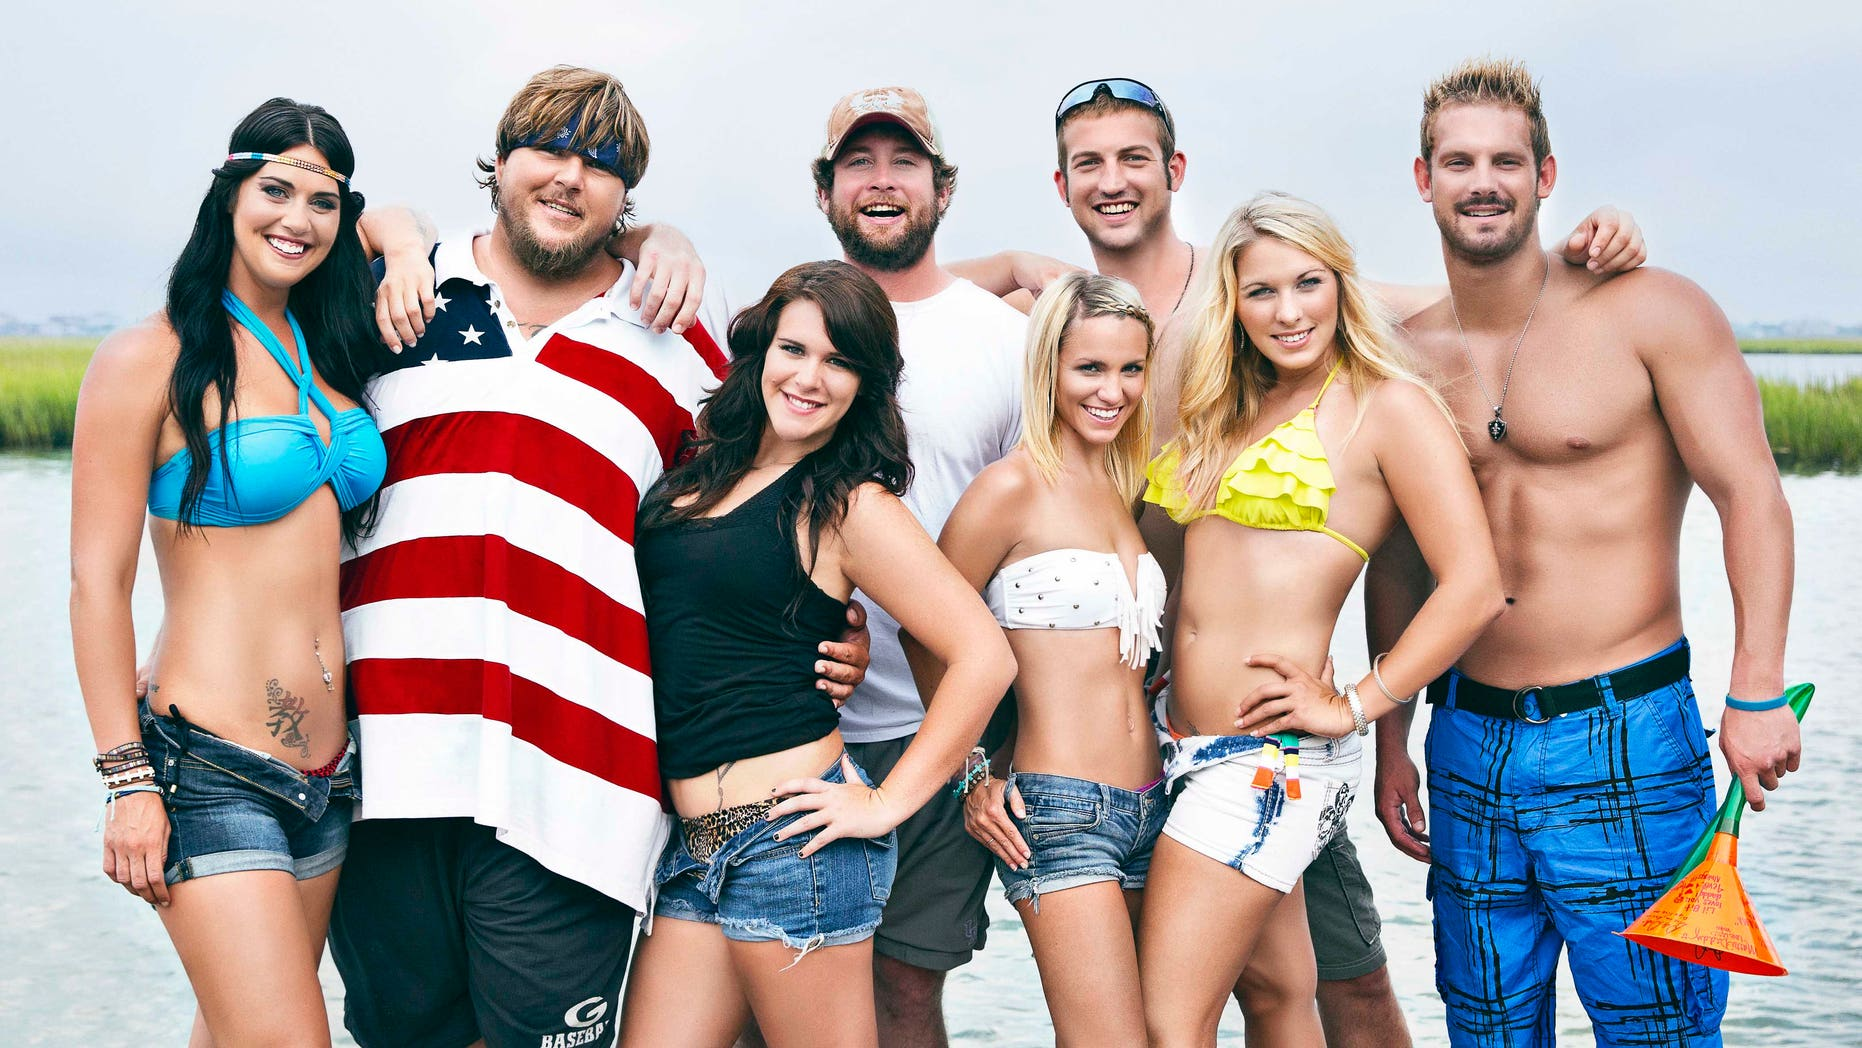 Will CMT's 'Party Down South' be the next 'Duck Dynasty' or 'Jersey